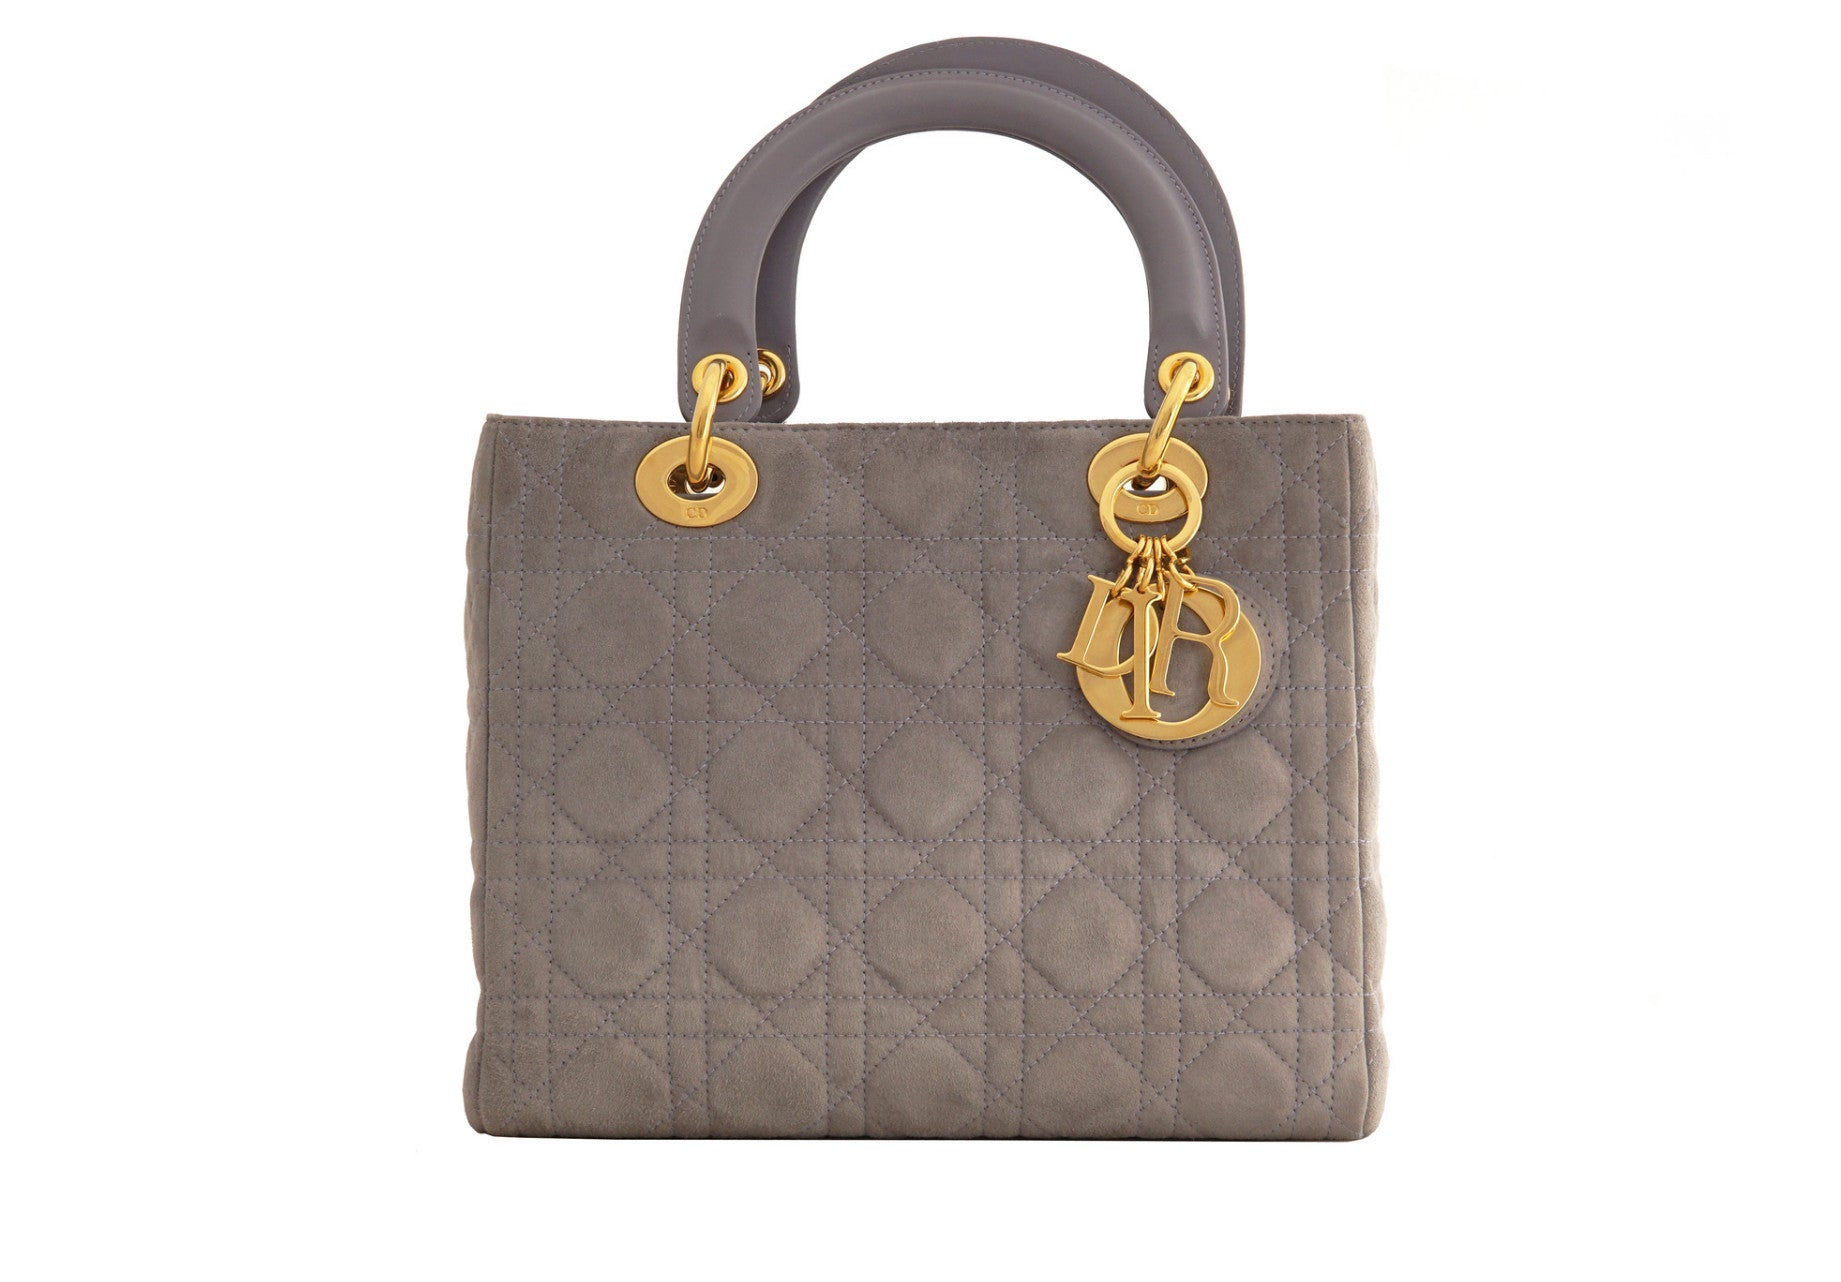 4964c7ac73 CHRISTIAN DIOR VINTAGE LADY BAG - Cannage Suede in Lilac - Vintage District